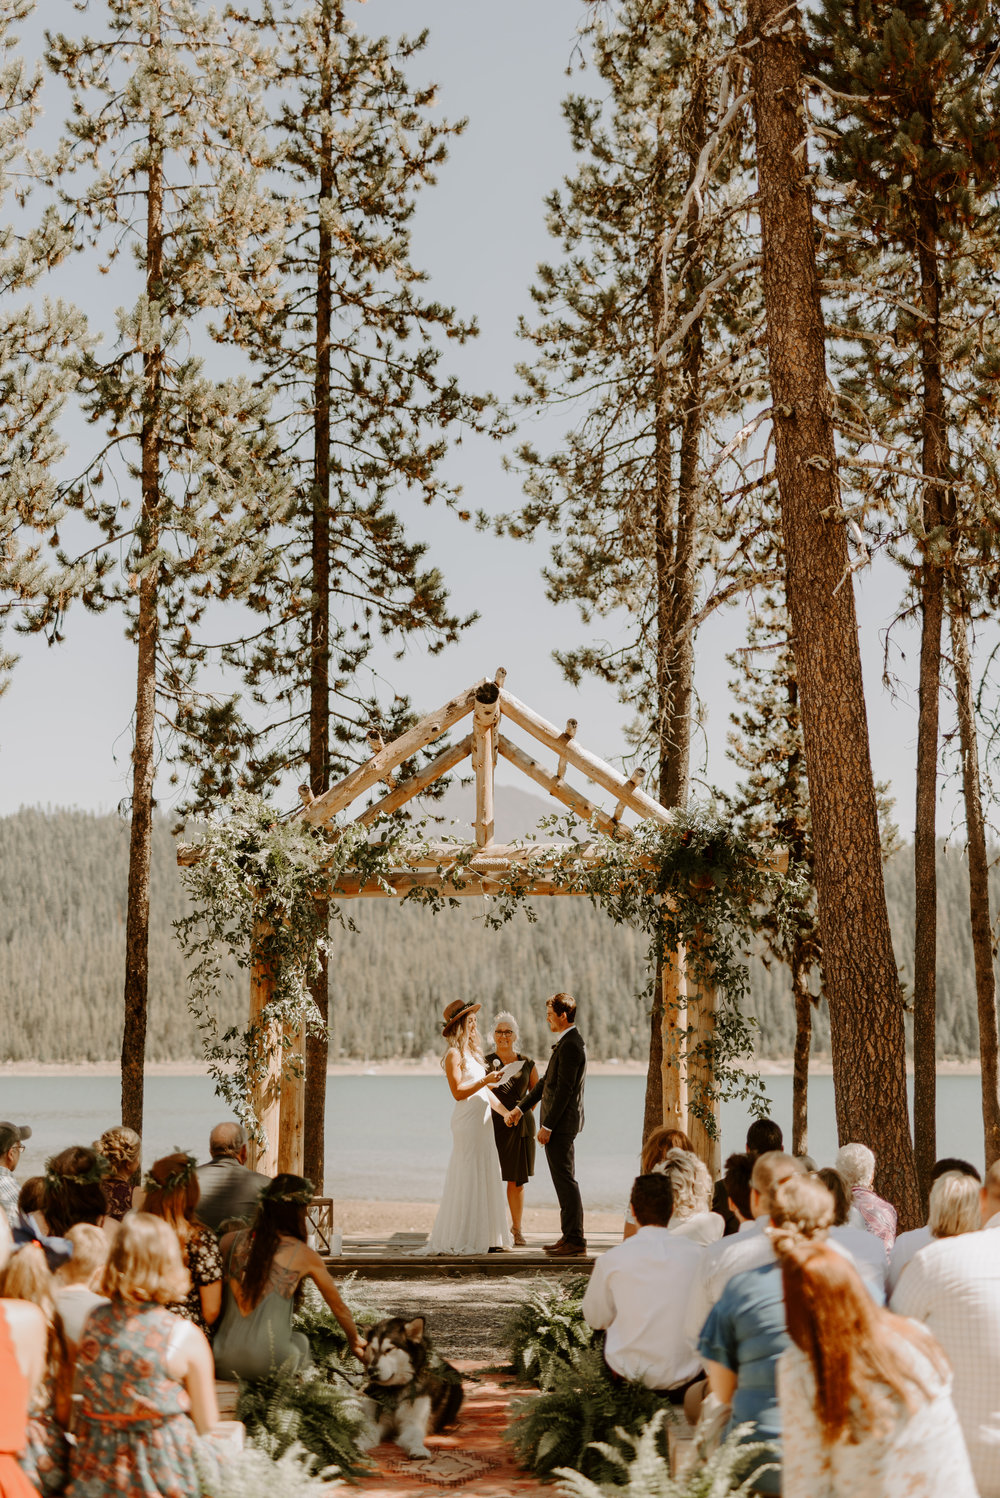 Teal and JD - Ceremony-104.jpg